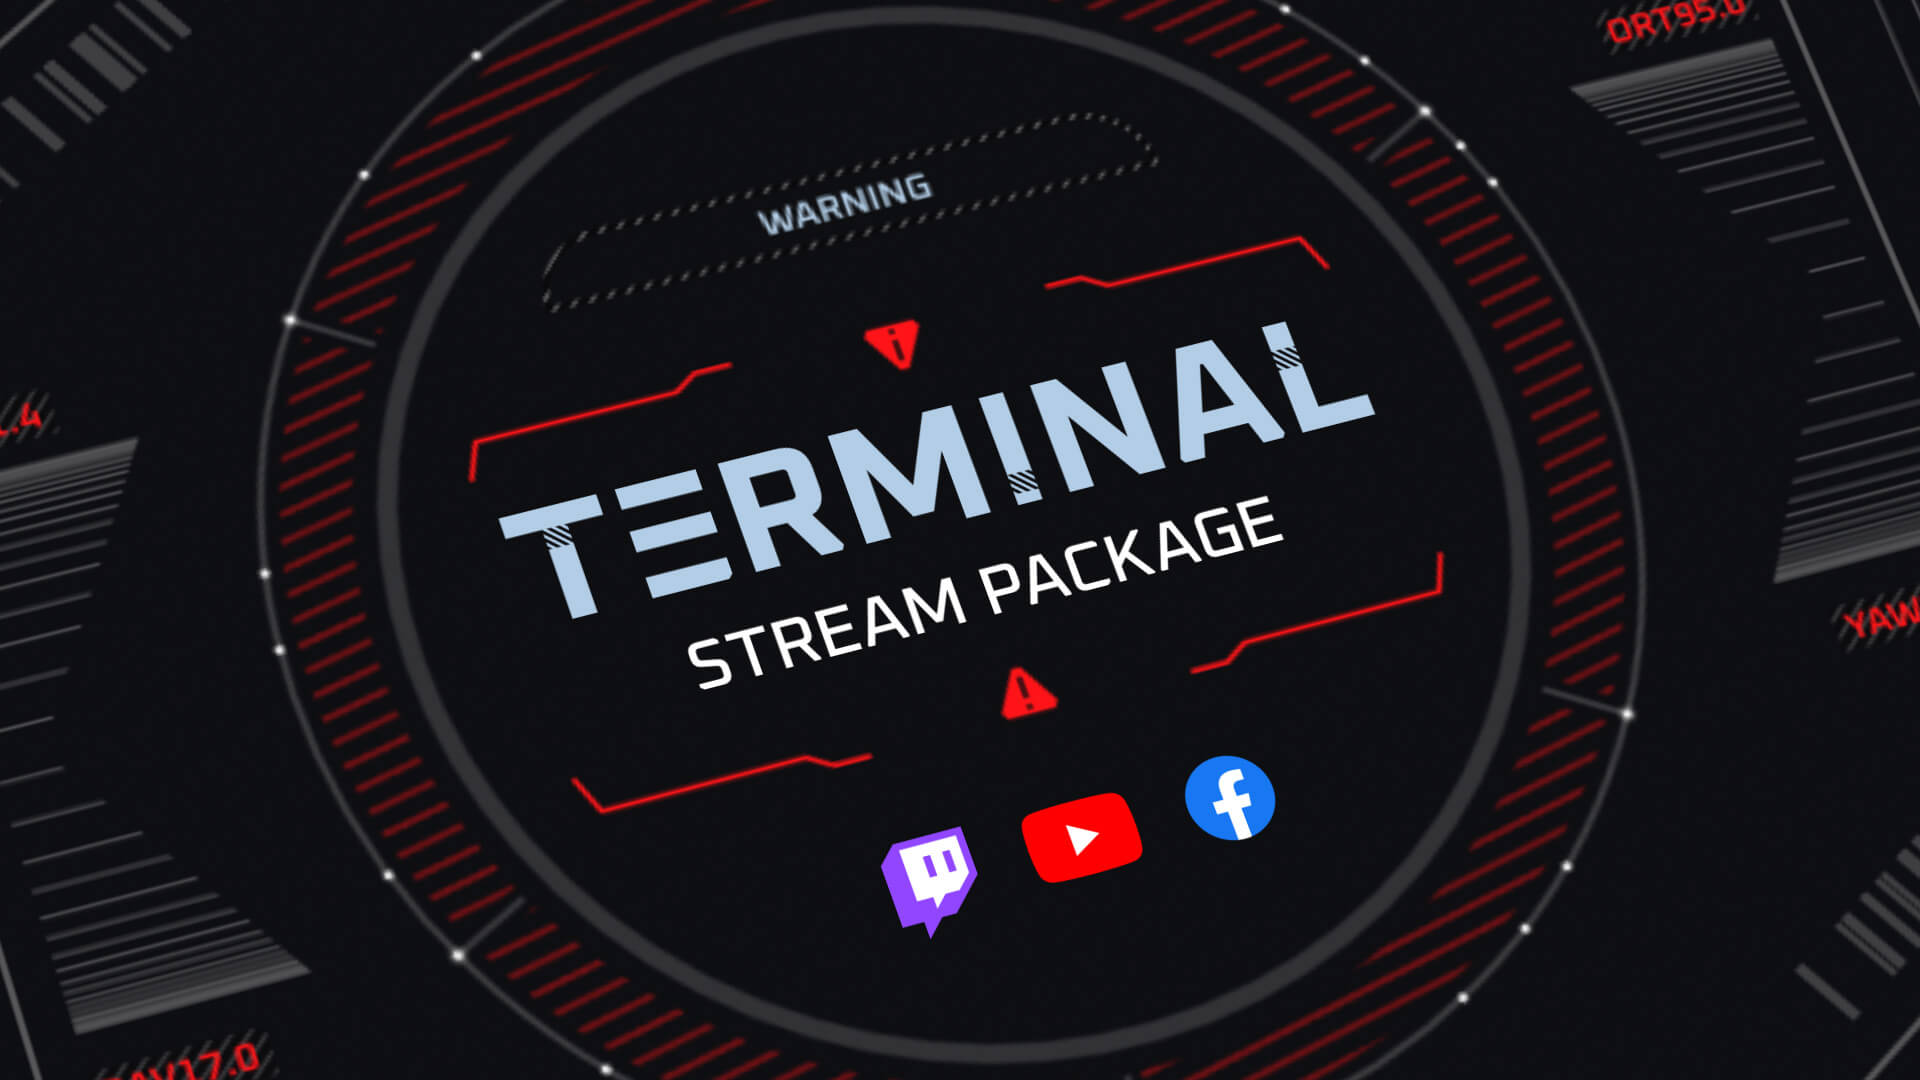 Terminal Stream Package